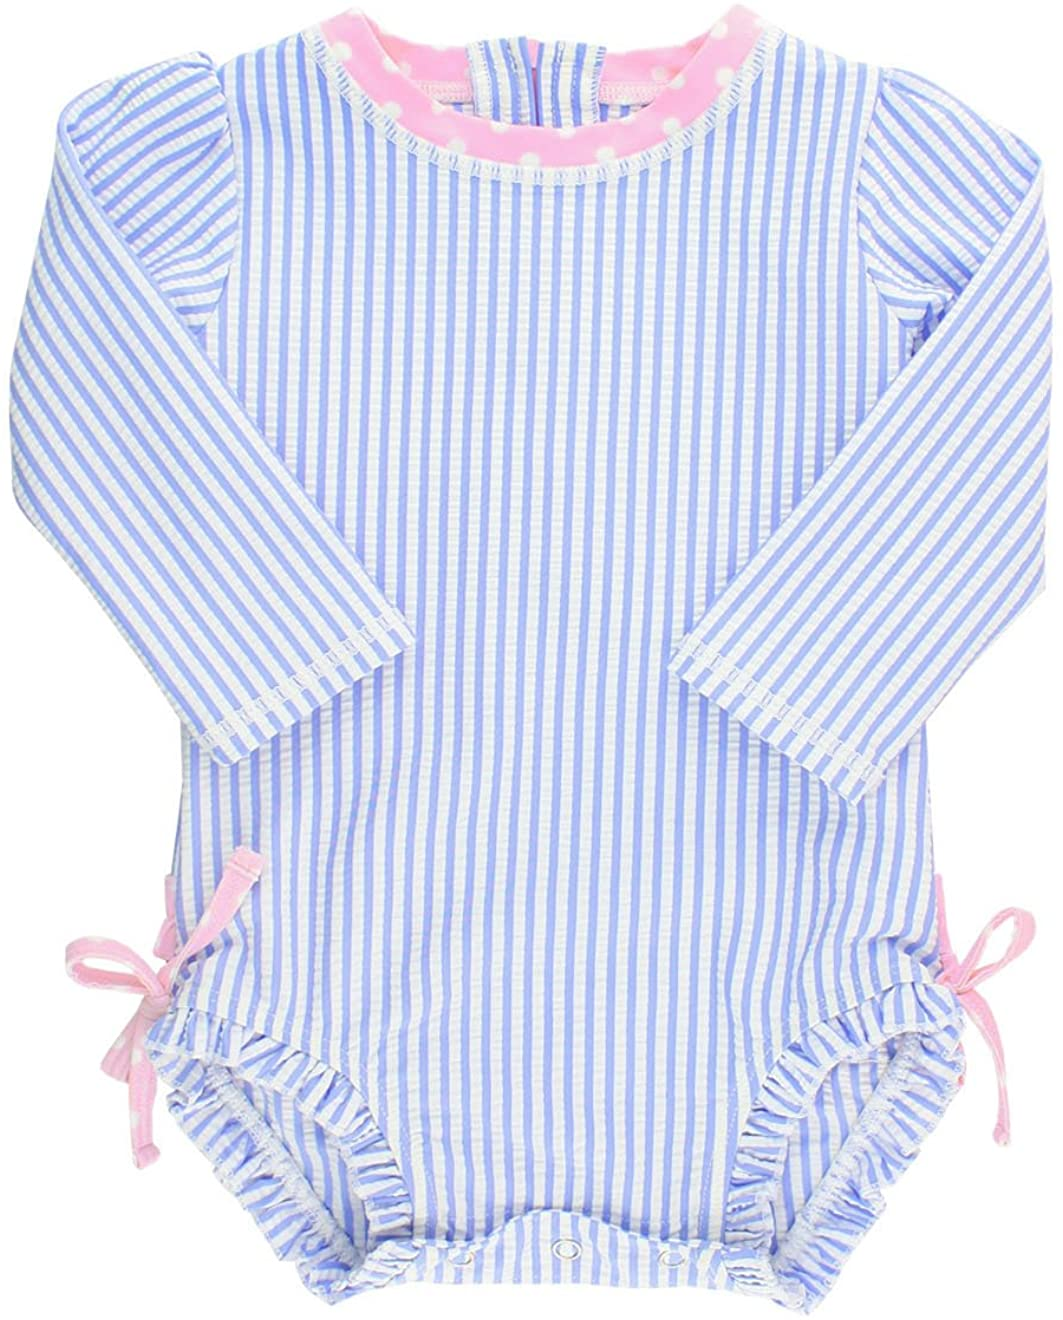 3-6m RuffleButts Baby//Toddler Girls Long Sleeve One Piece Swimsuit Sun Protection Blue Seersucker with UPF 50